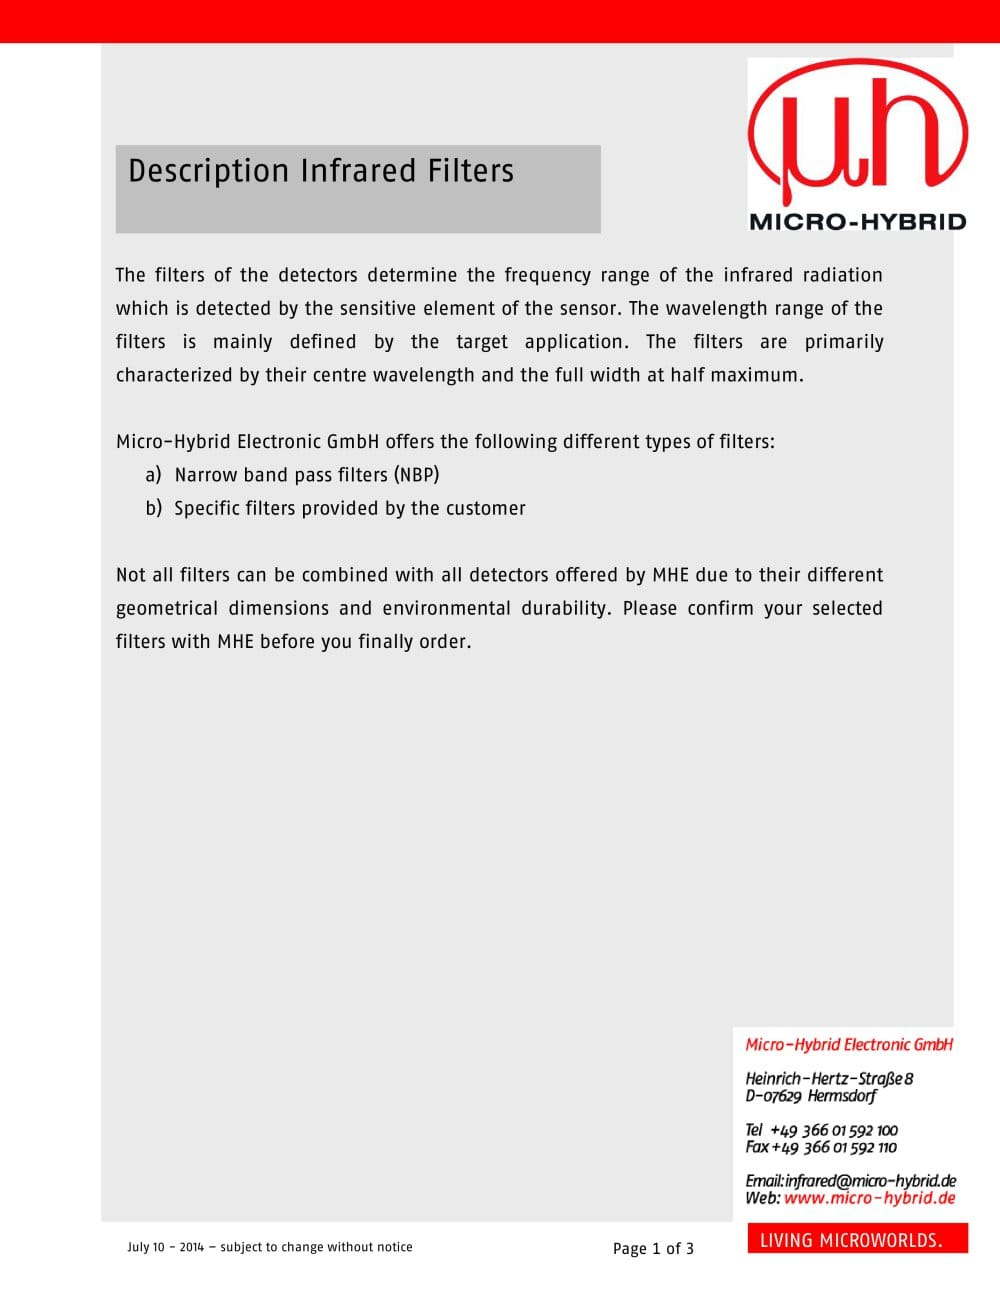 Description Infrared Filters 1 3 Pages